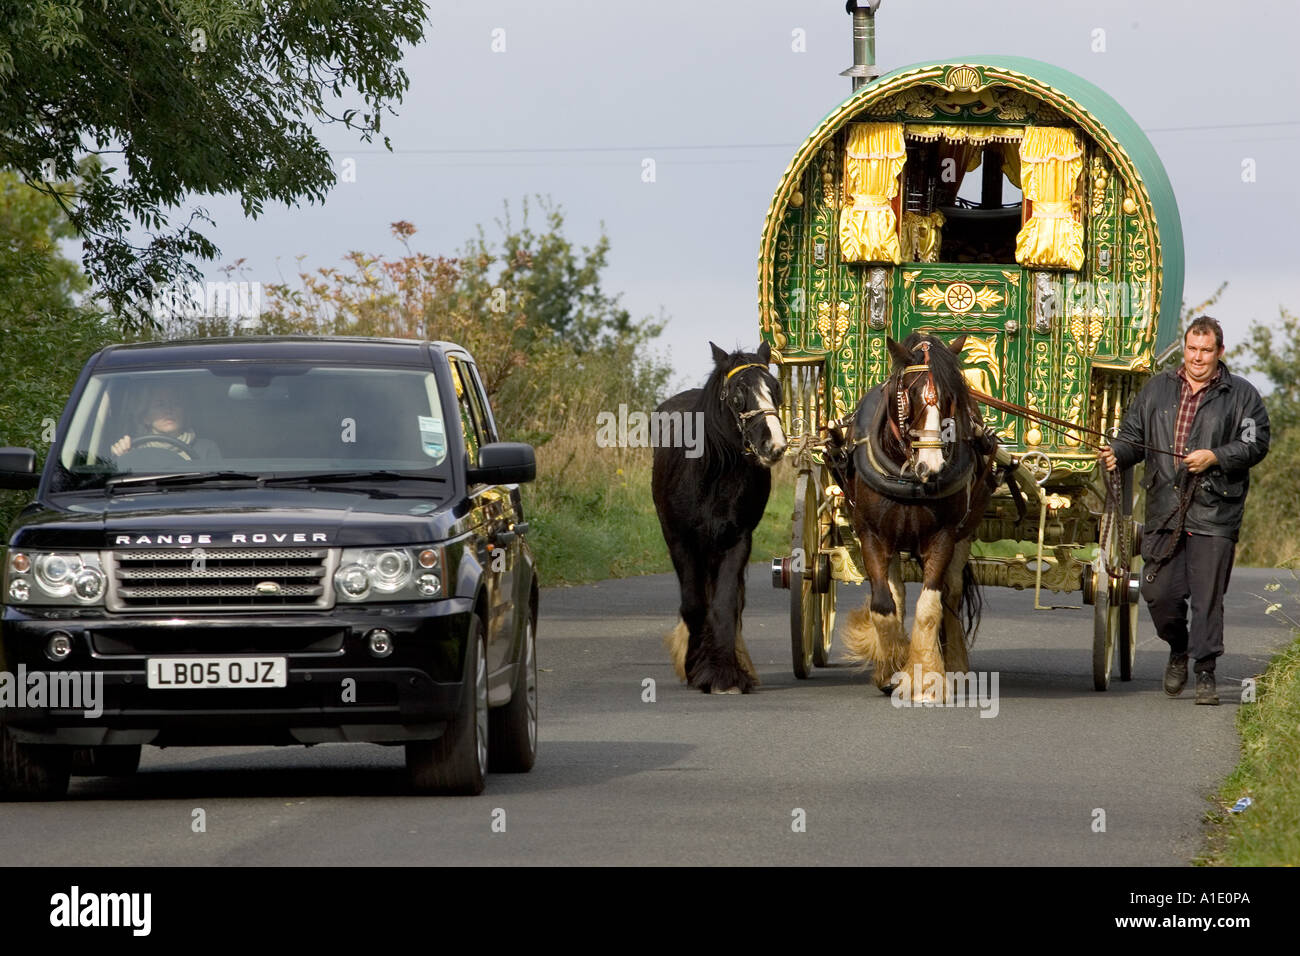 Range Rover car overtakes shire horse drawn gypsy caravan on country lane Stow On The Wold Gloucestershire United Kingdom - Stock Image